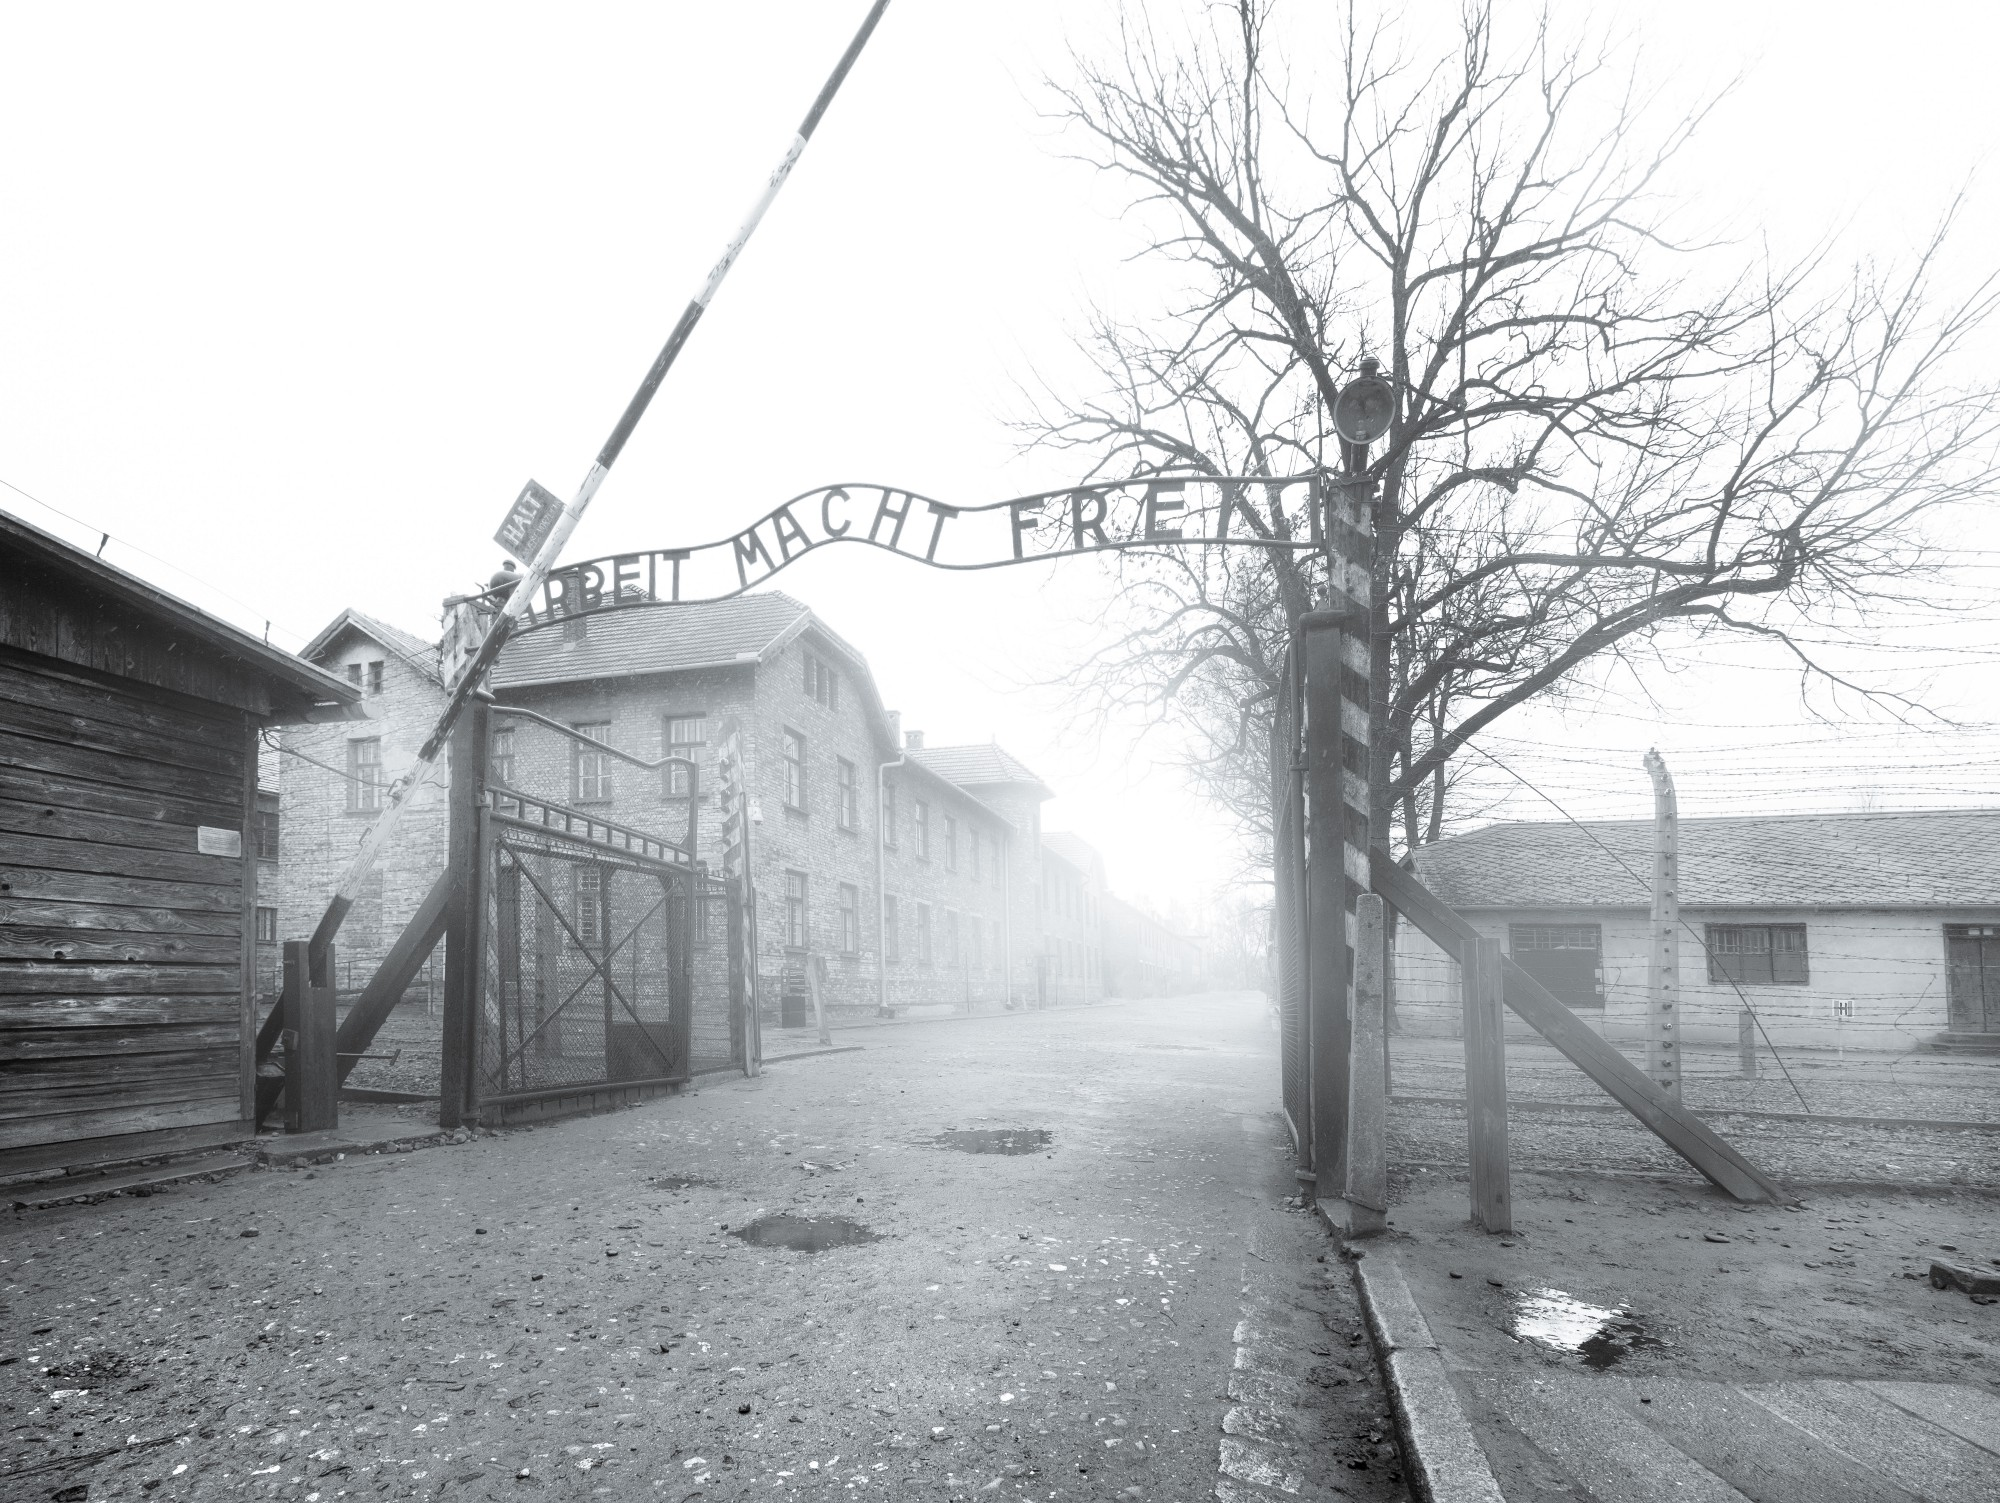 Arbeit Macht Frei - Work Will Set You Free - a sign you see as you enter Auschwitz.